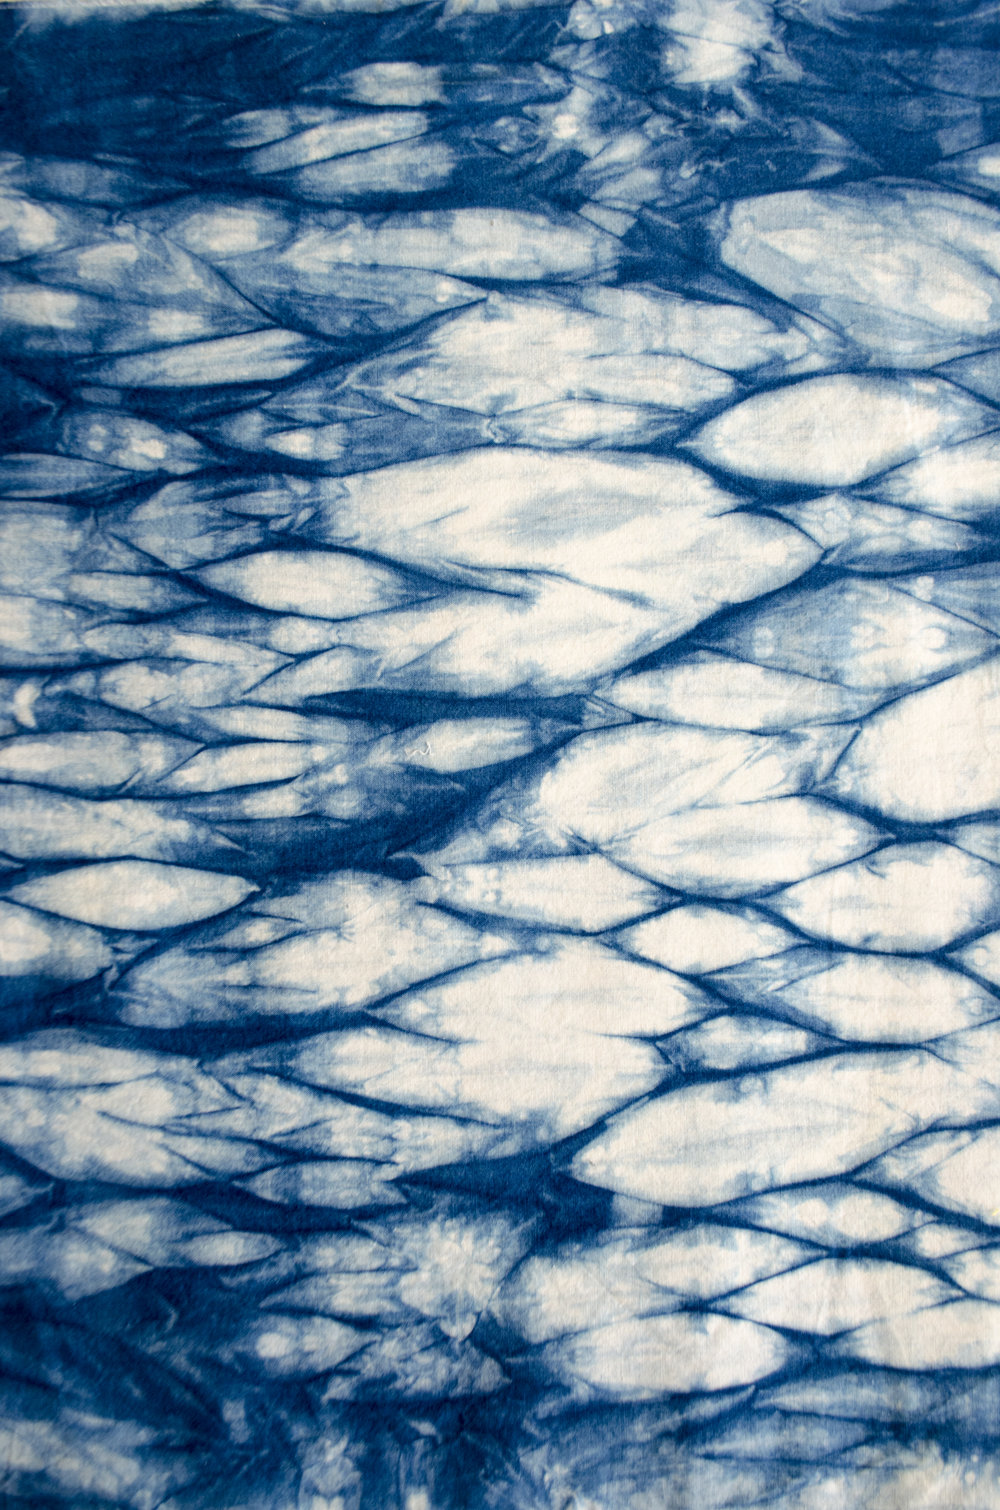 Arashi Shibori Dyed in the Indigo Vat